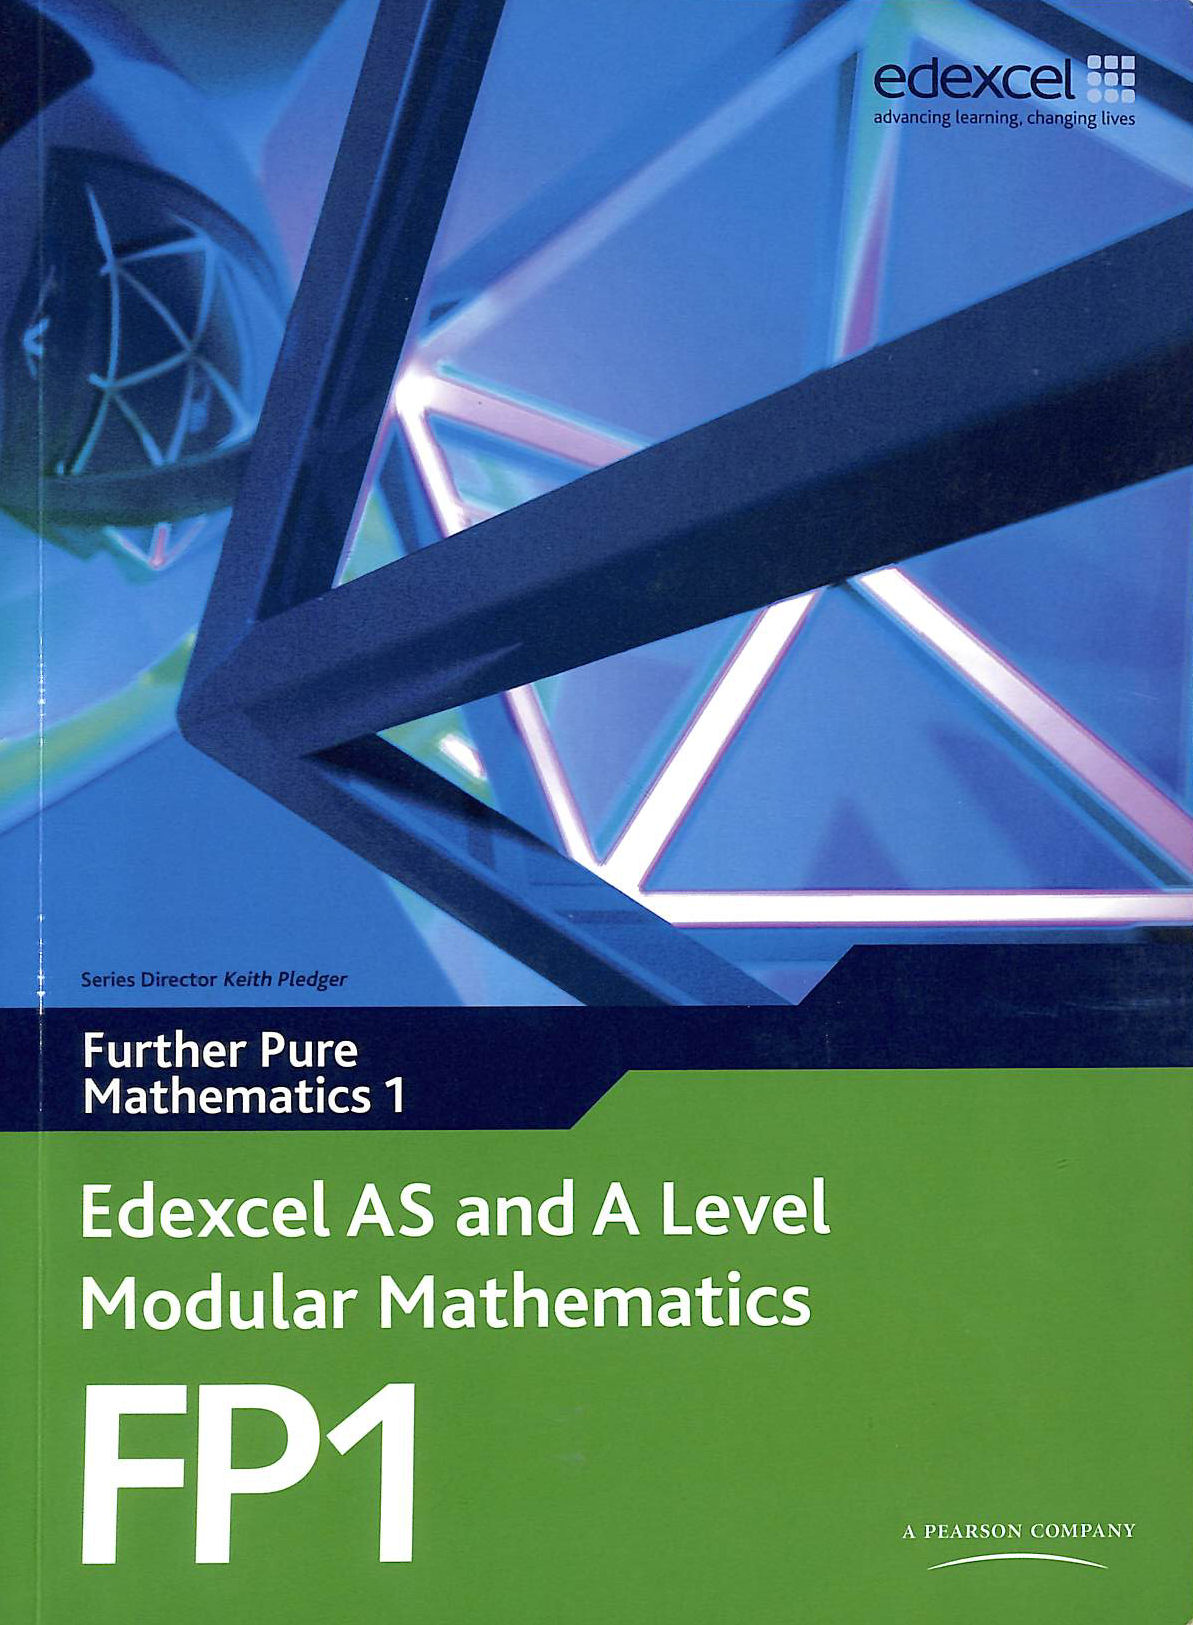 Image for Edexcel As And A Level Modular Mathematics - Further Pure Mathematics 1